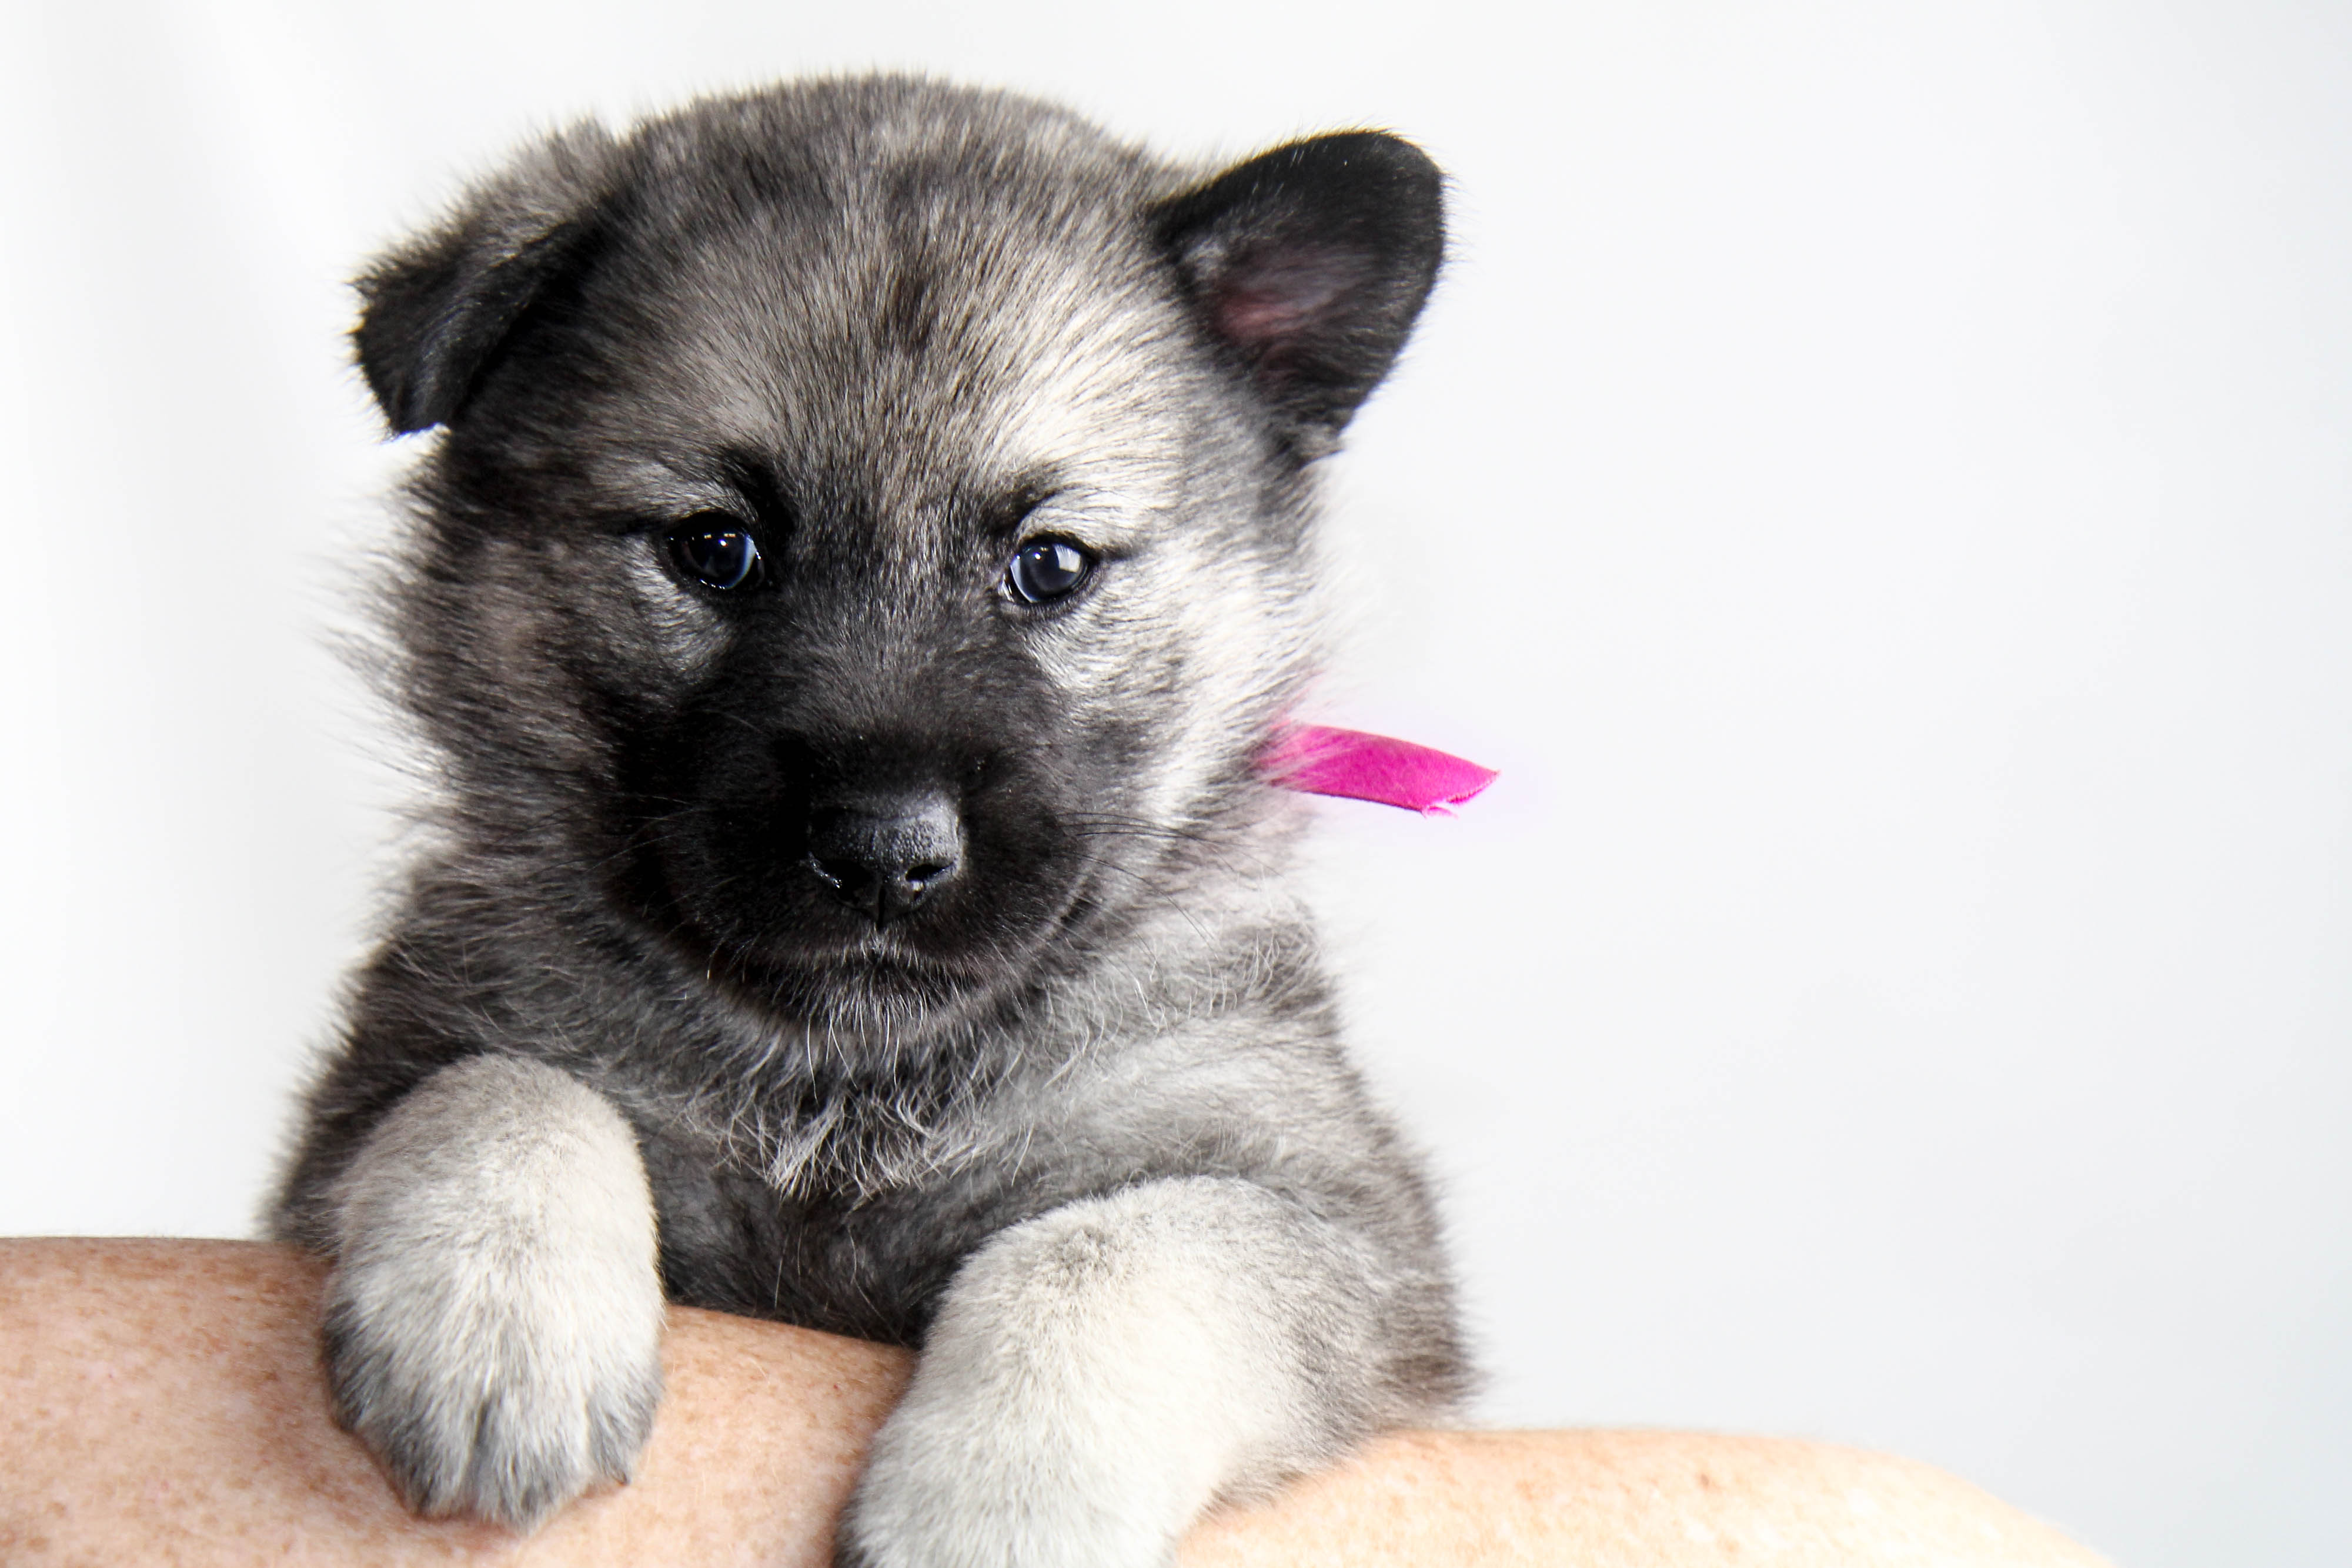 Find an Elkhound | Breeders | Rescues & Rehomes | Request Information